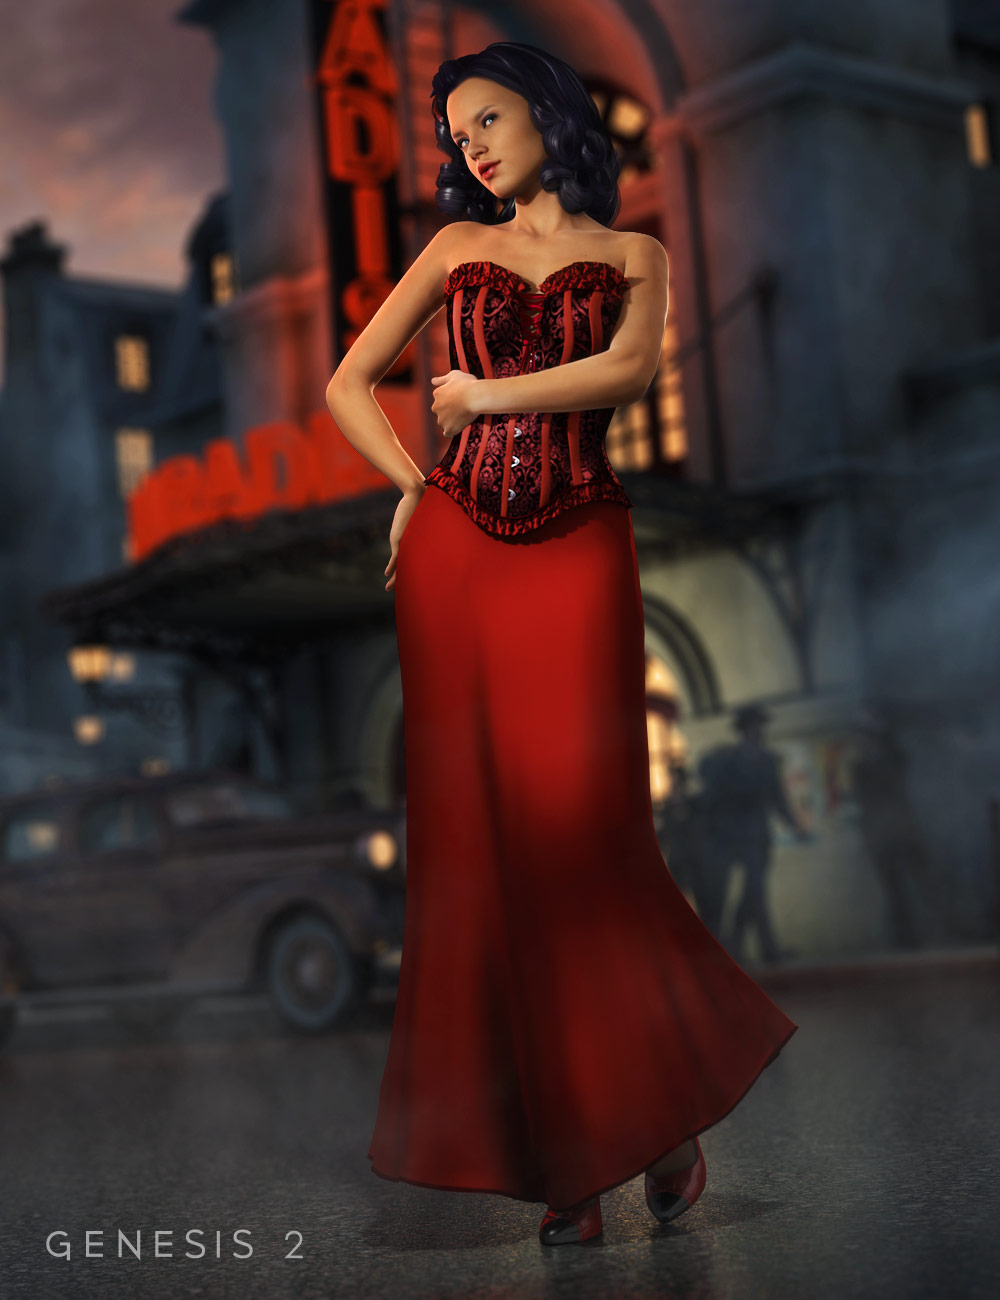 Isolabella Dress by: EmmaAndJordi, 3D Models by Daz 3D